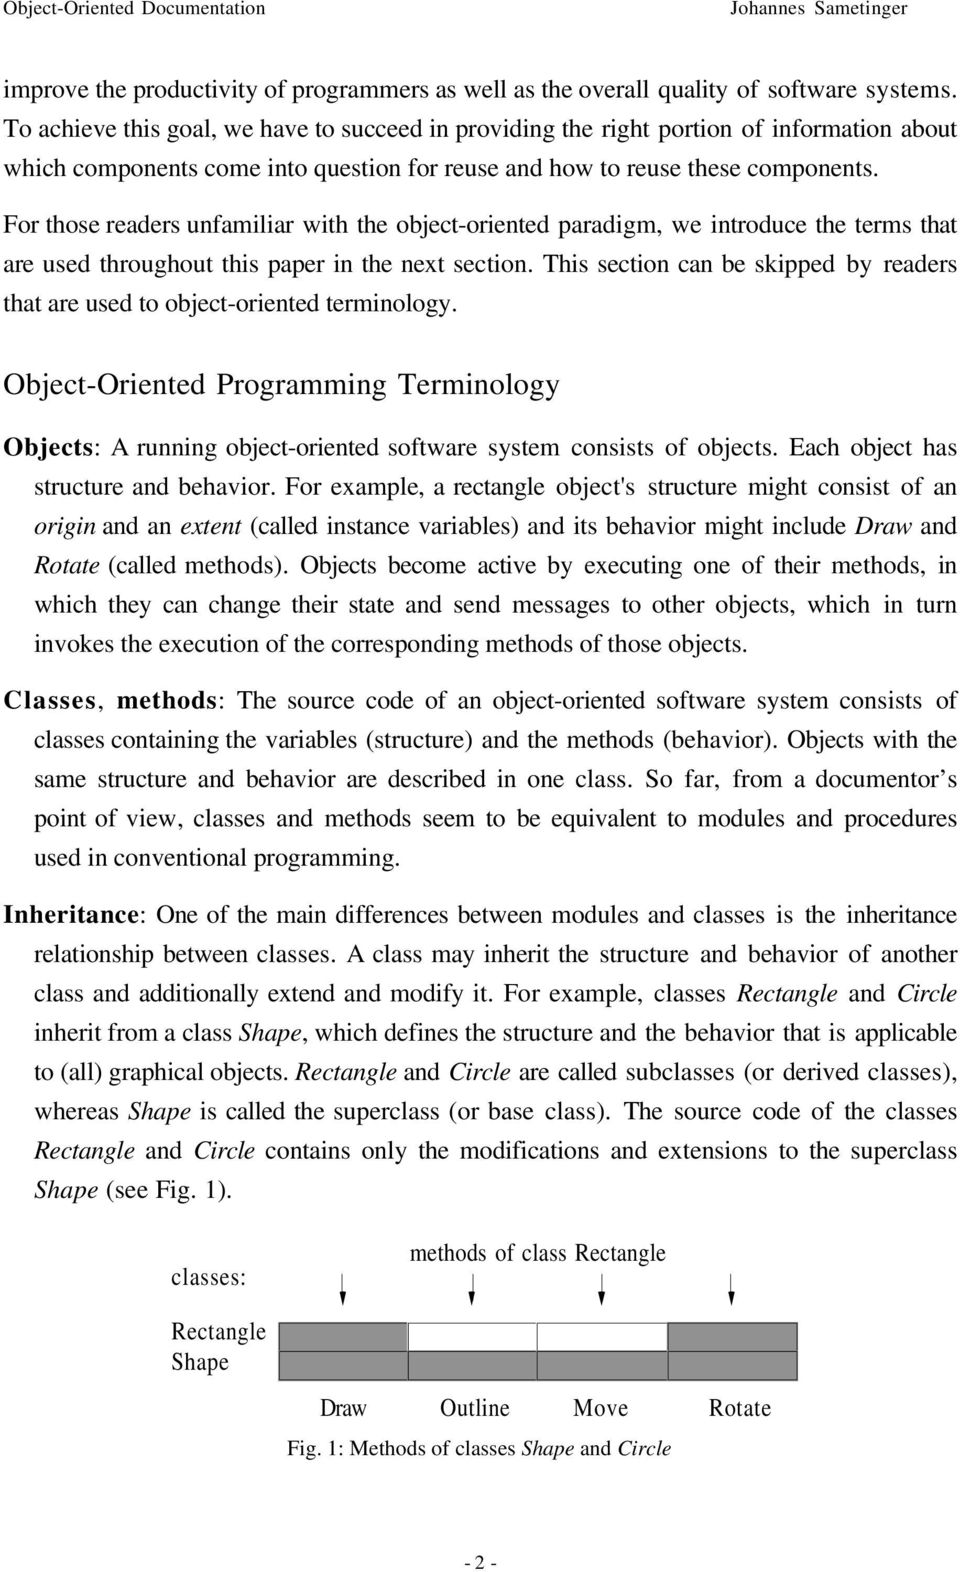 For those readers unfamiliar with the object-oriented paradigm, we introduce the terms that are used throughout this paper in the next section.